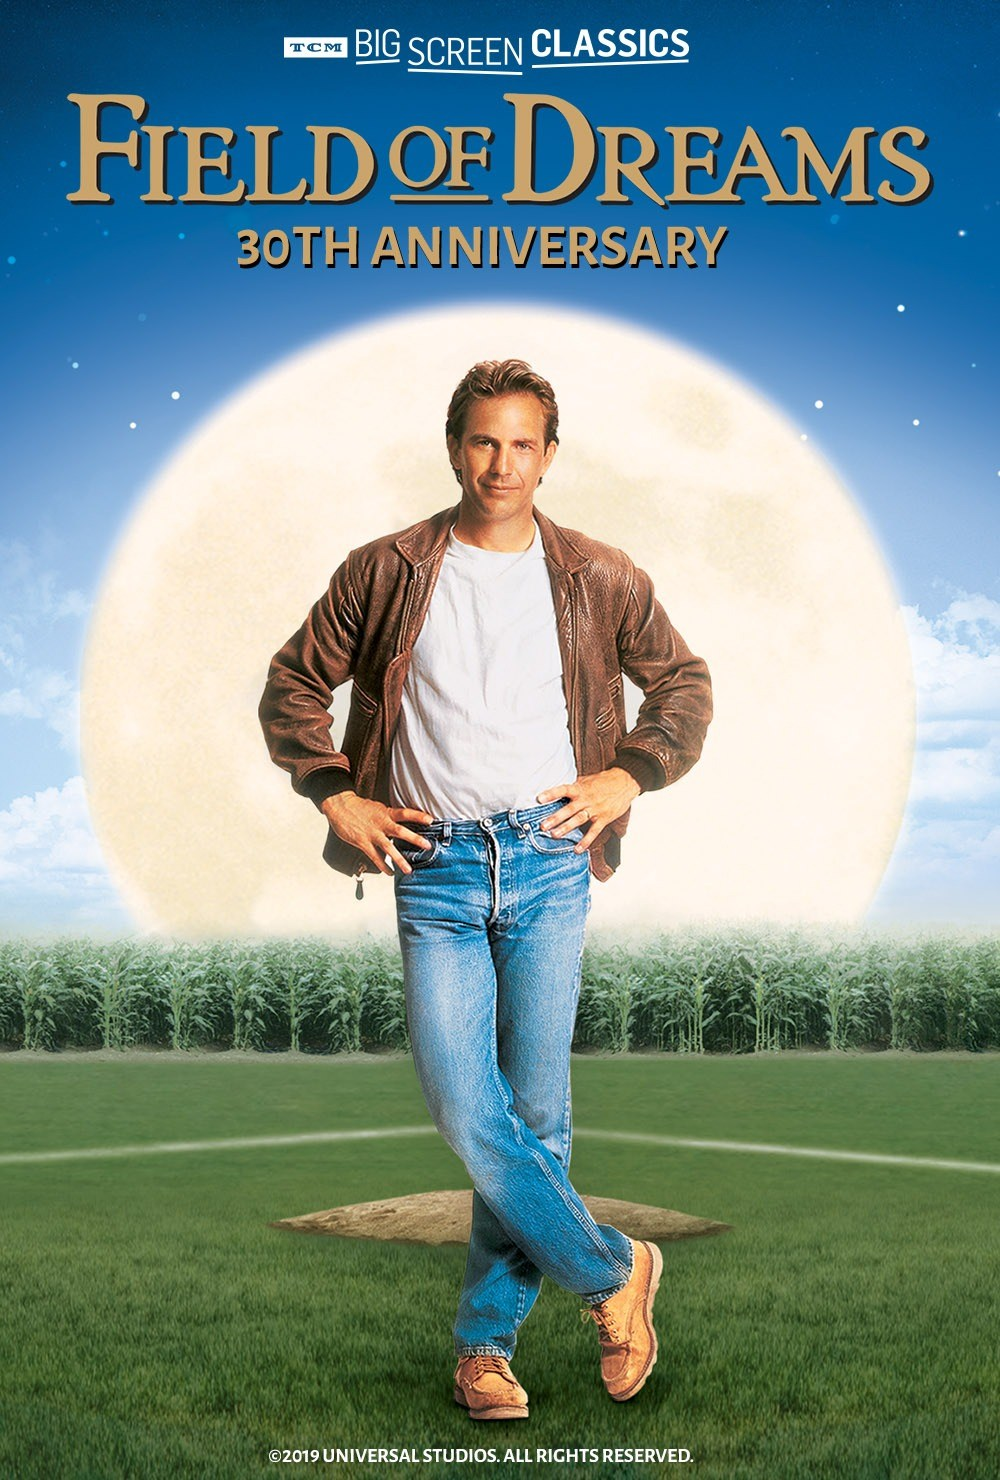 field-of-dreams-poster-9853ce20741c66ff30494ace5c459a22.jpg